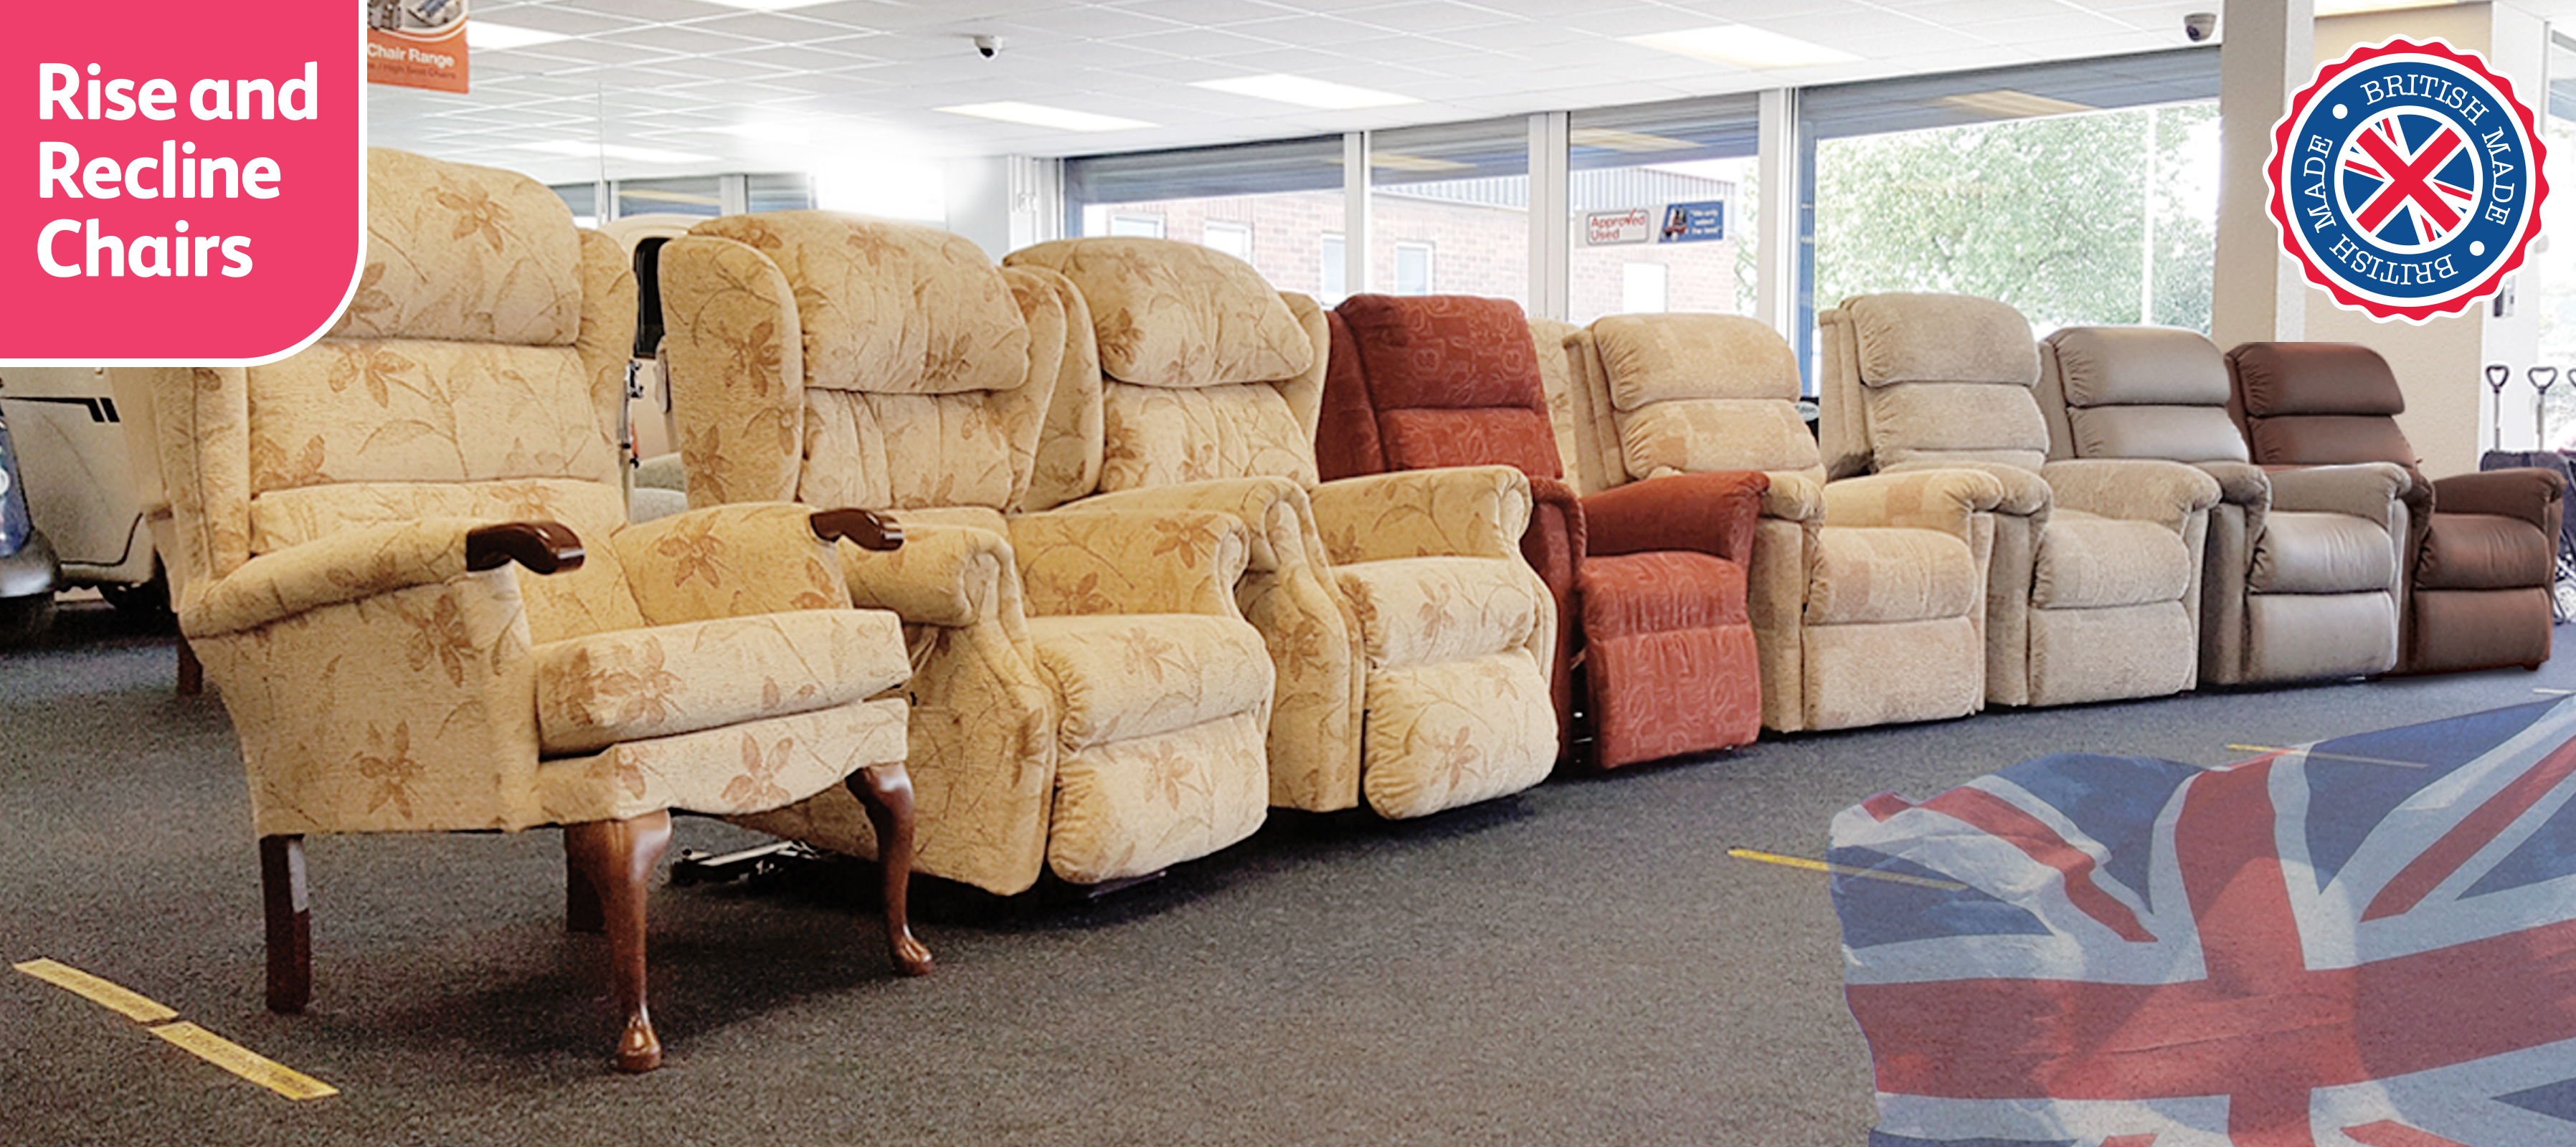 Rise & Recliner Chairs Header